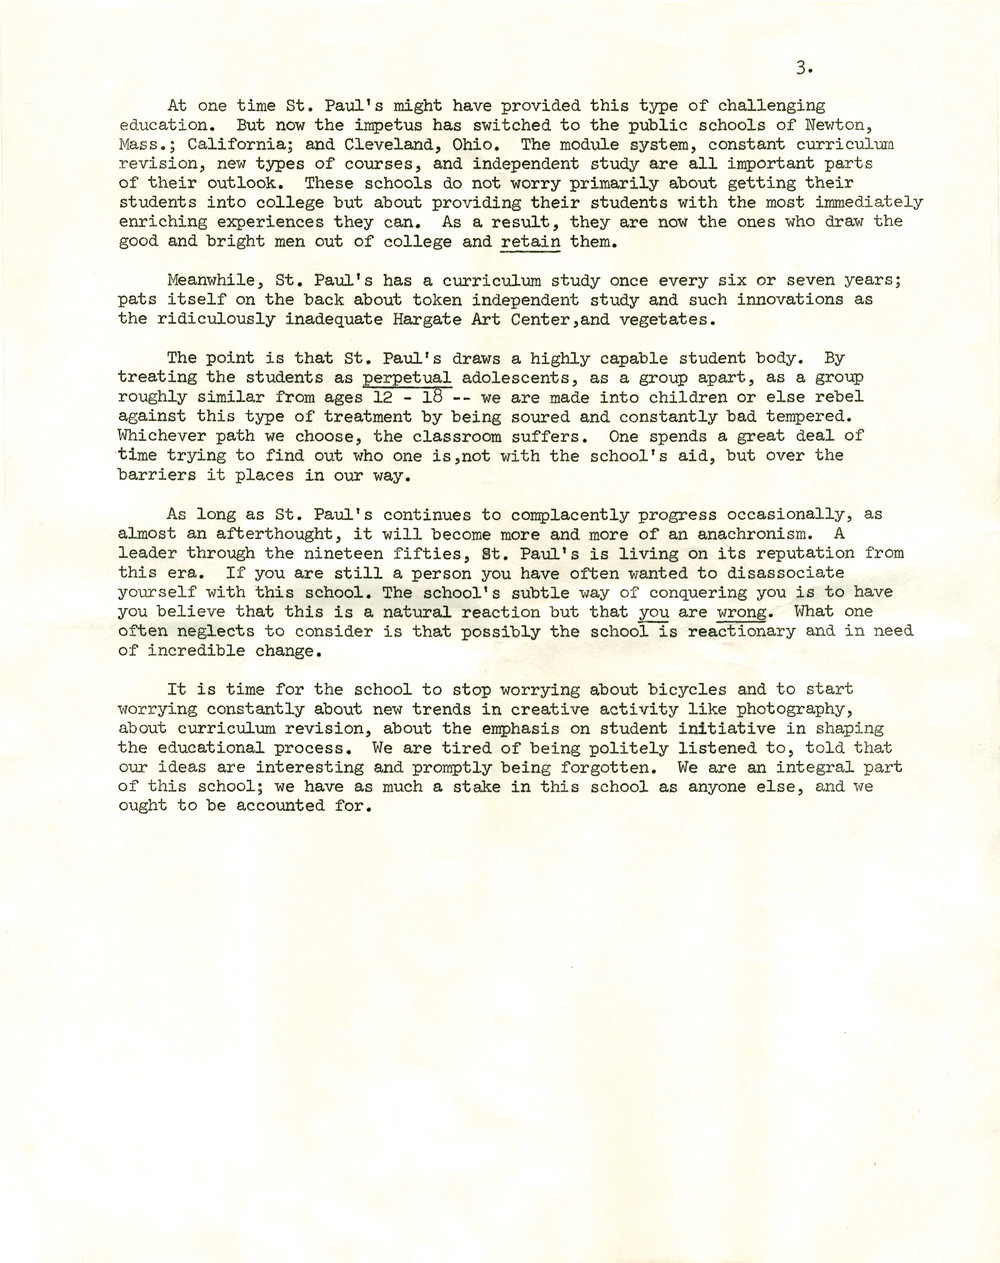 1968 Sixth Form Letter-3_.jpg